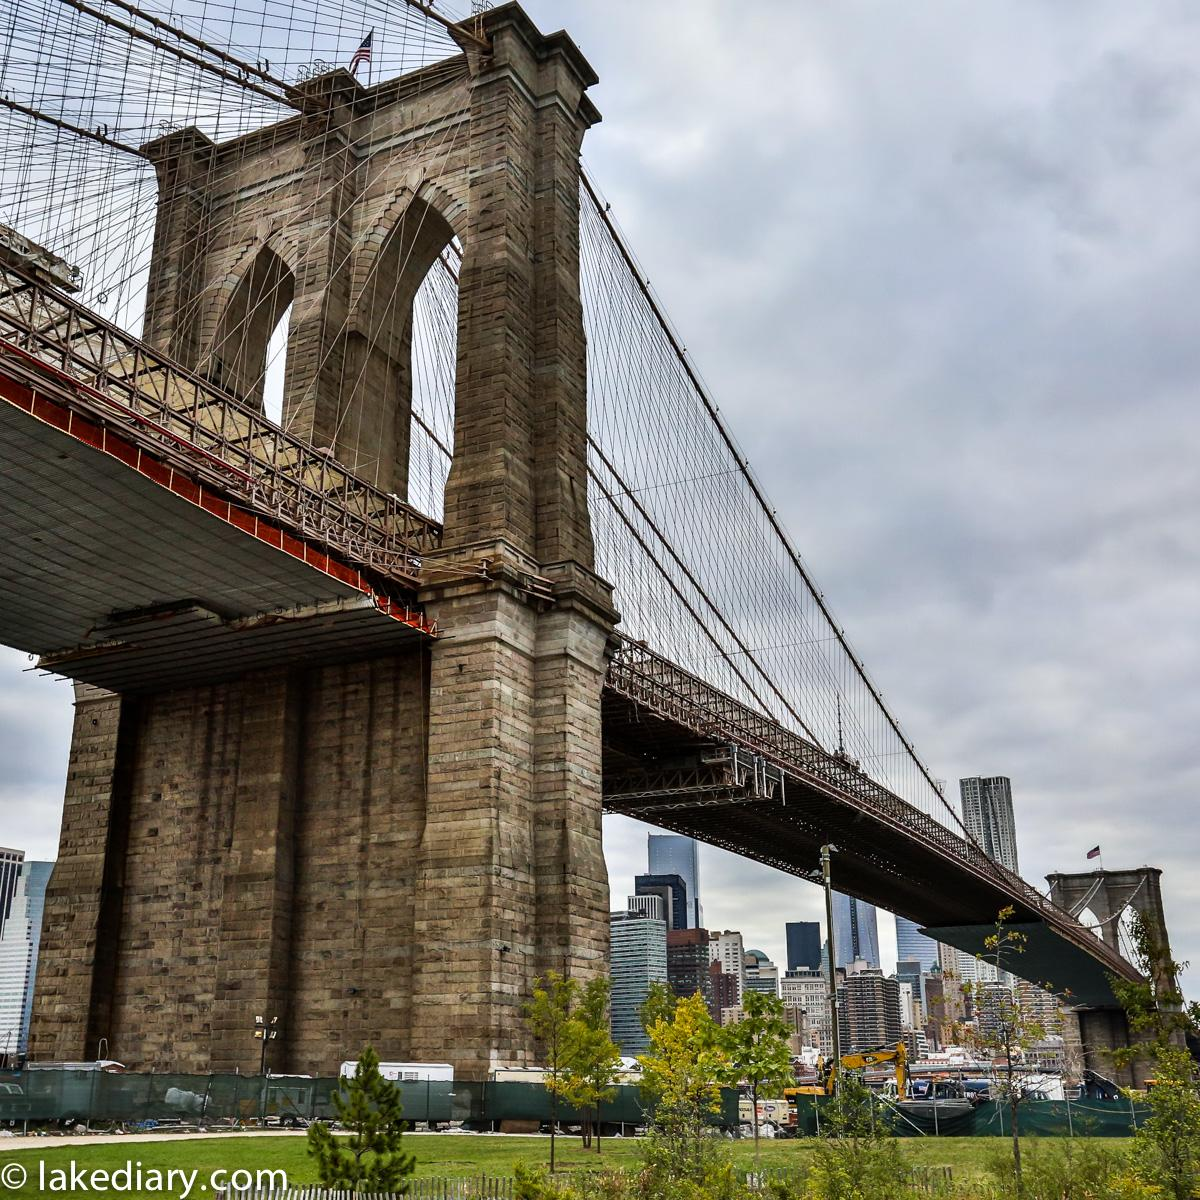 New York - the Brooklyn Bridge